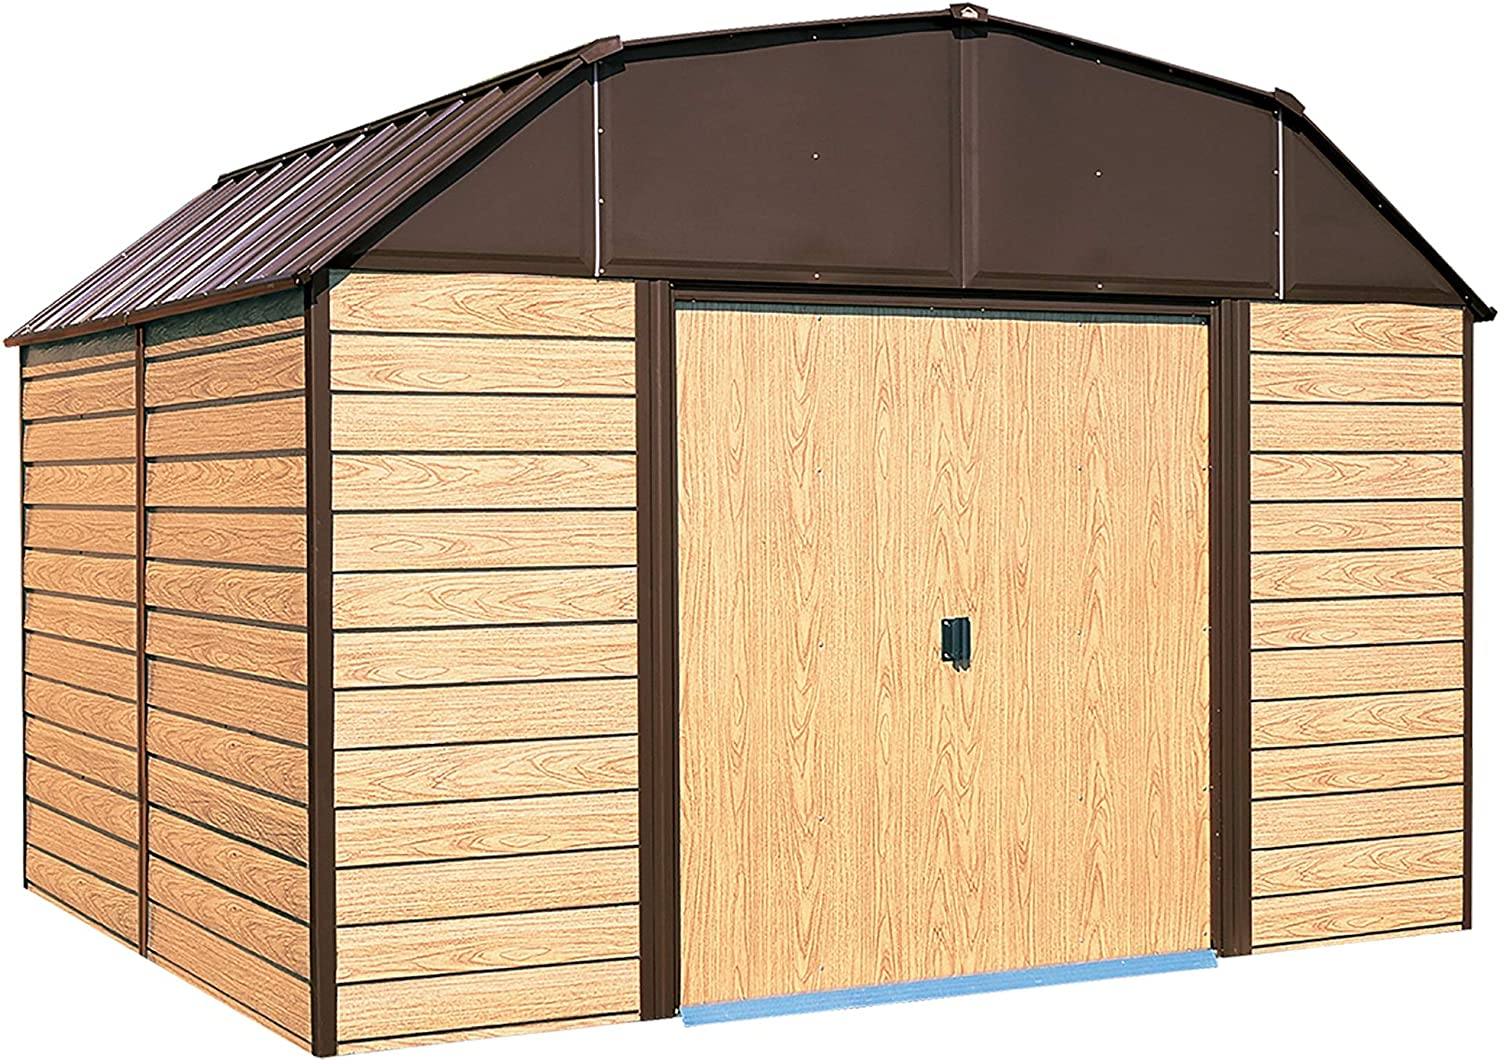 B003XZ21VK Arrow Woodhaven WH Storage Shed, 10 by 9-Feet 81d8byZR8oL